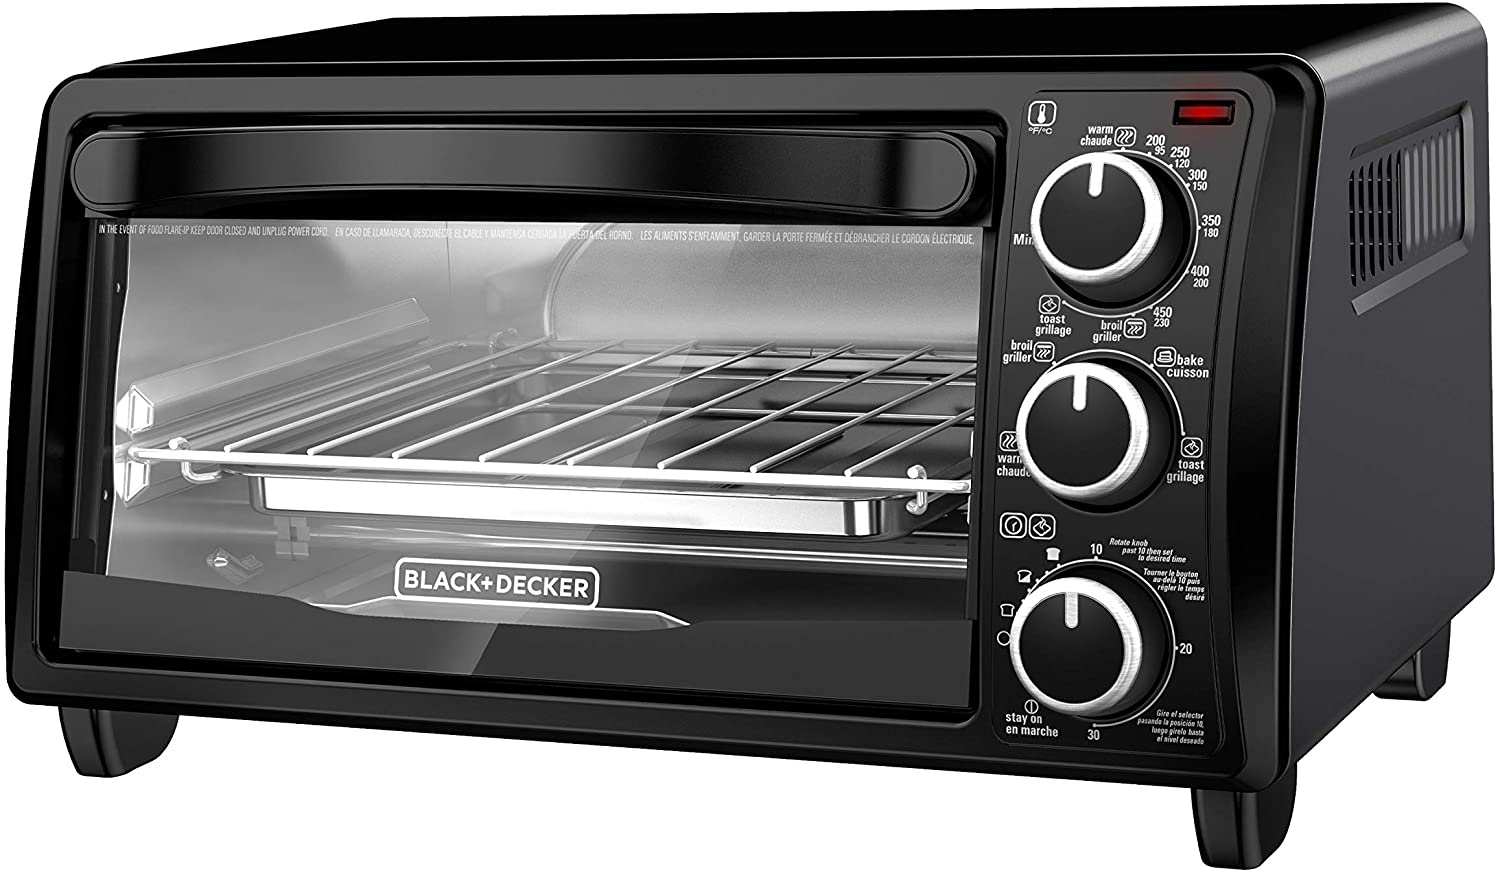 Black+Decker TO1313B Toaster Oven, 4-Slice